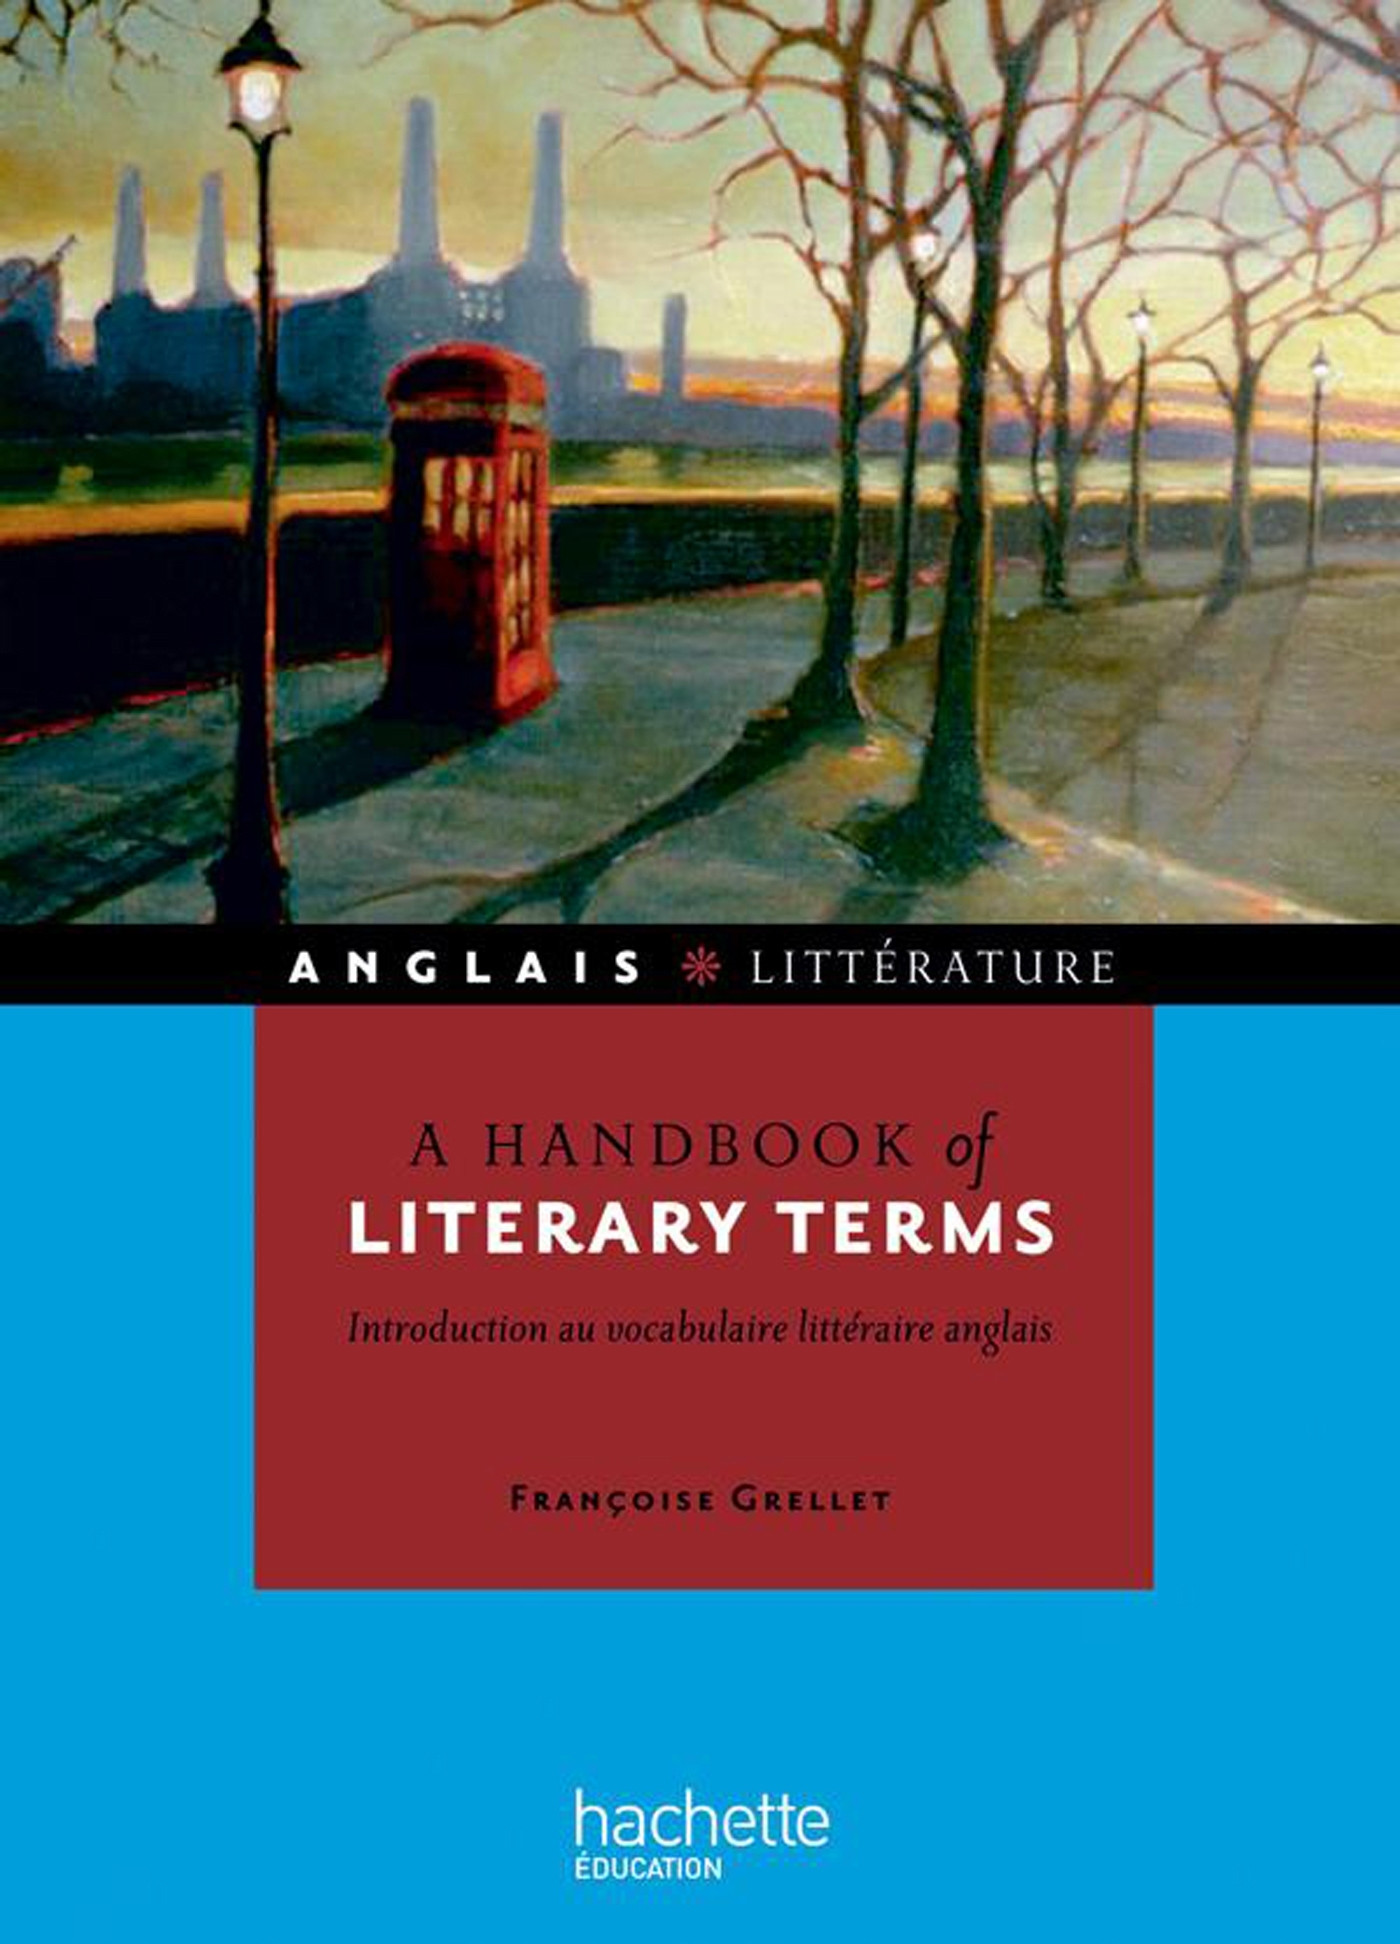 A HANDBOOK OF LITERARY TERMS - INTRODUCTION AU VOCABULAIRE LITTERAIRE ANGLAIS